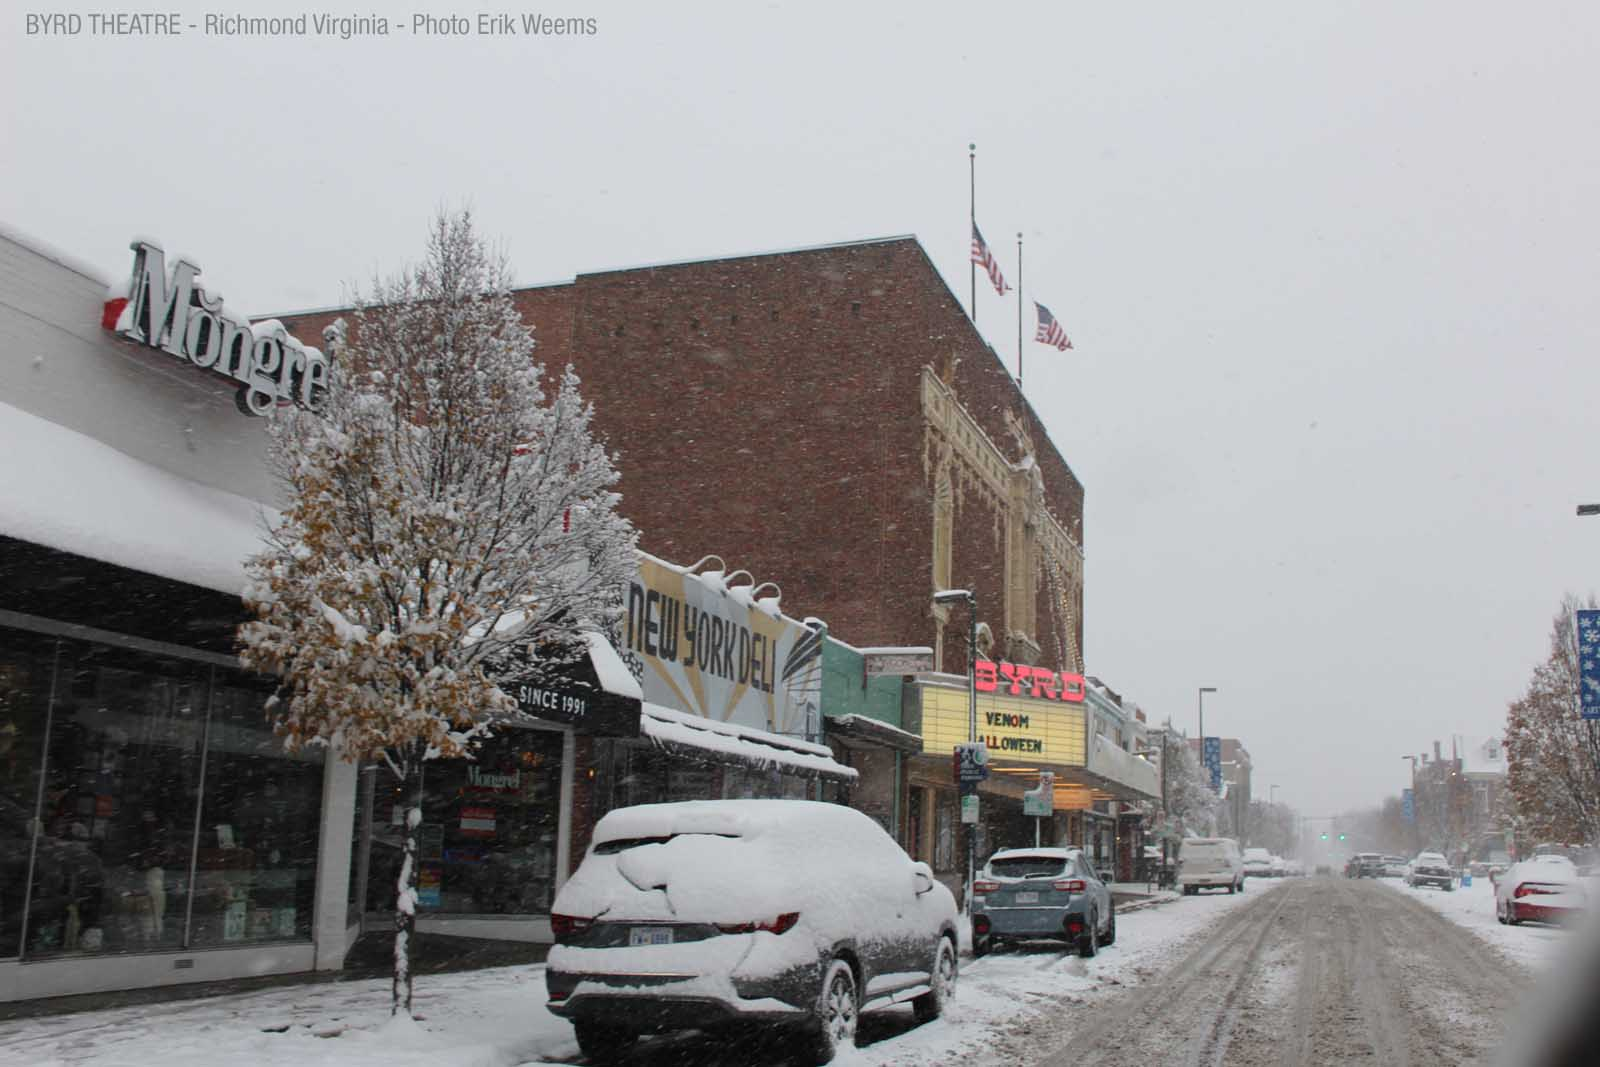 Larger image - Byrd Theater in the Snow - Richmond Virginia